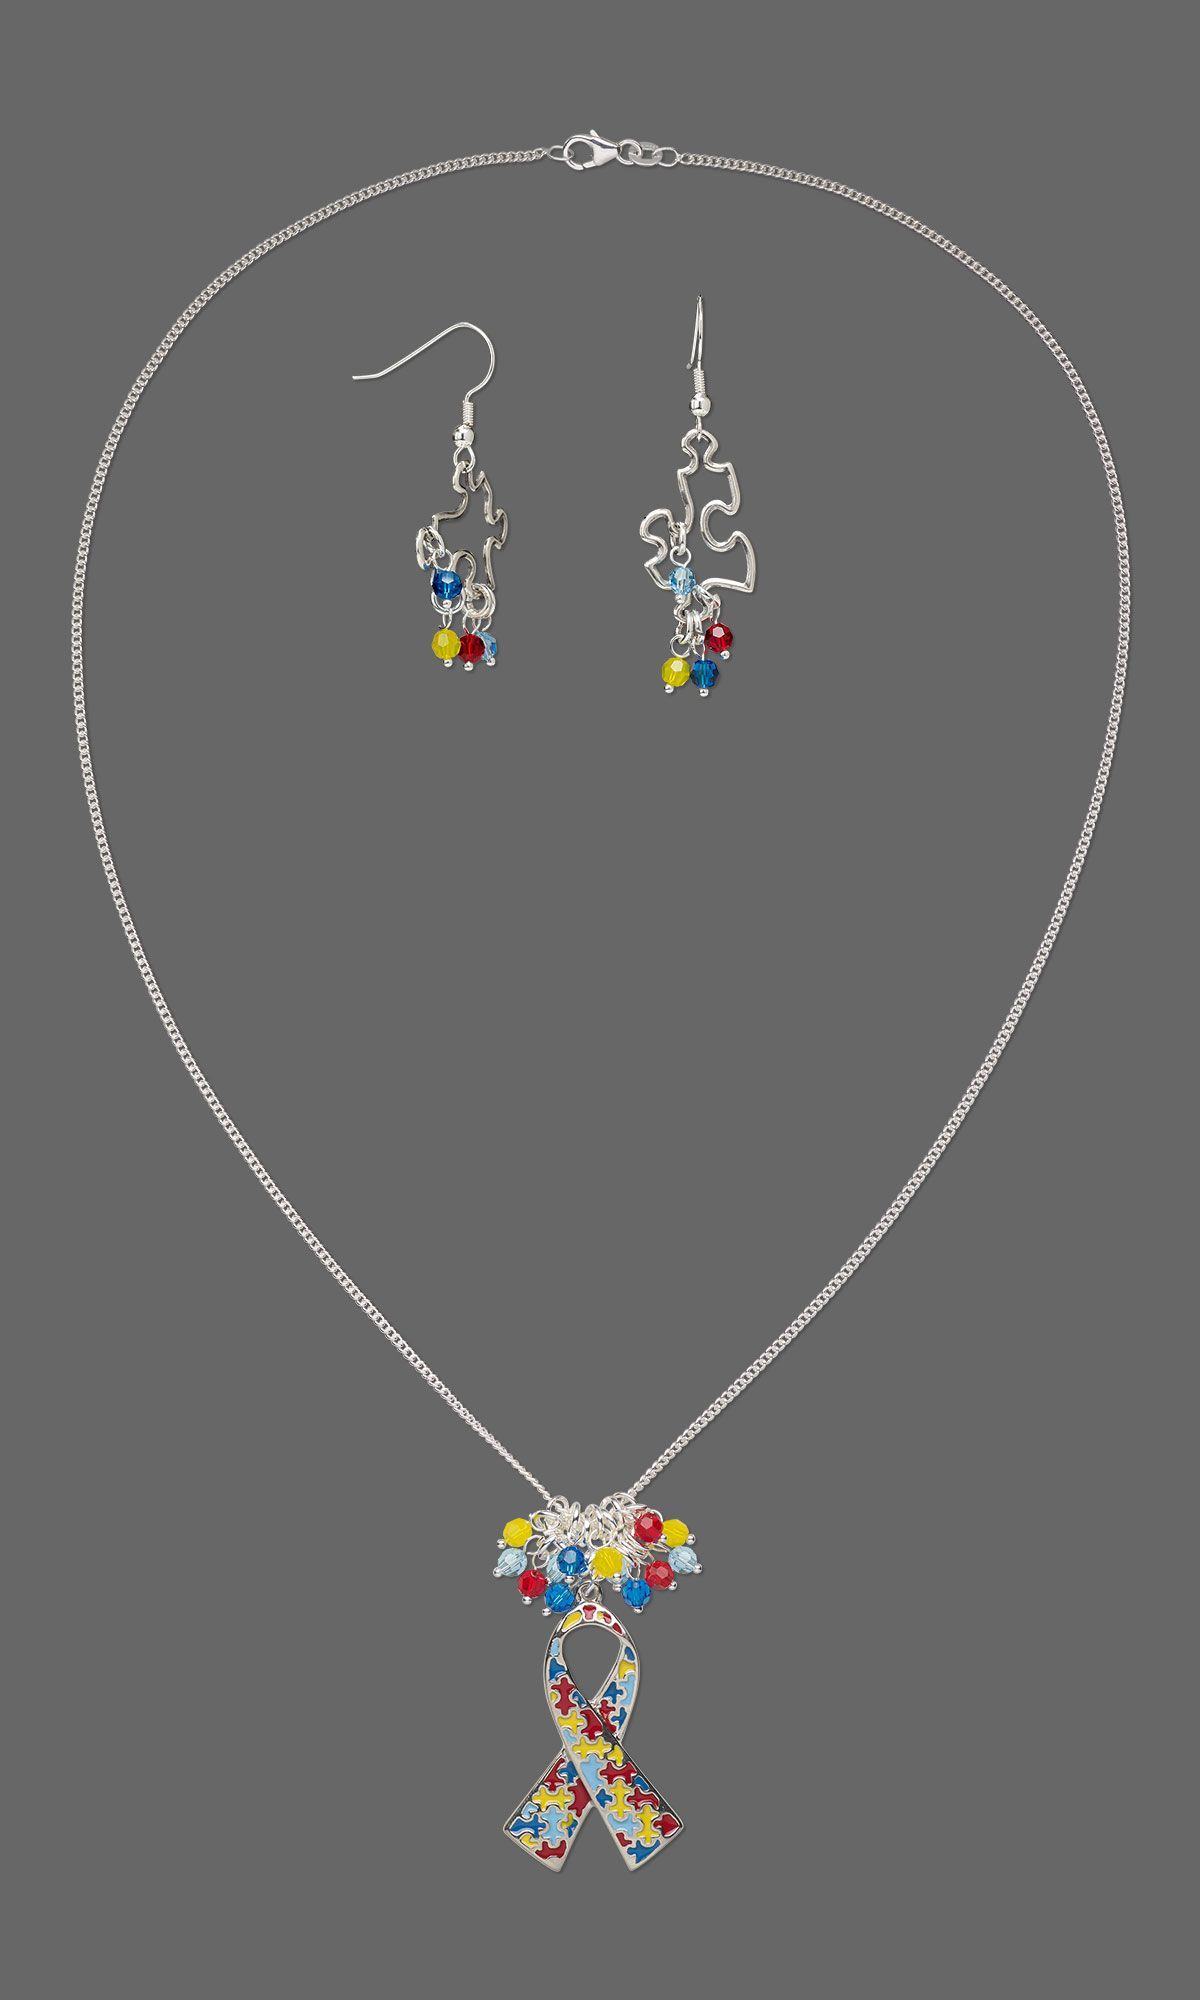 Jewelry design singlestrand necklace and earring set with silver